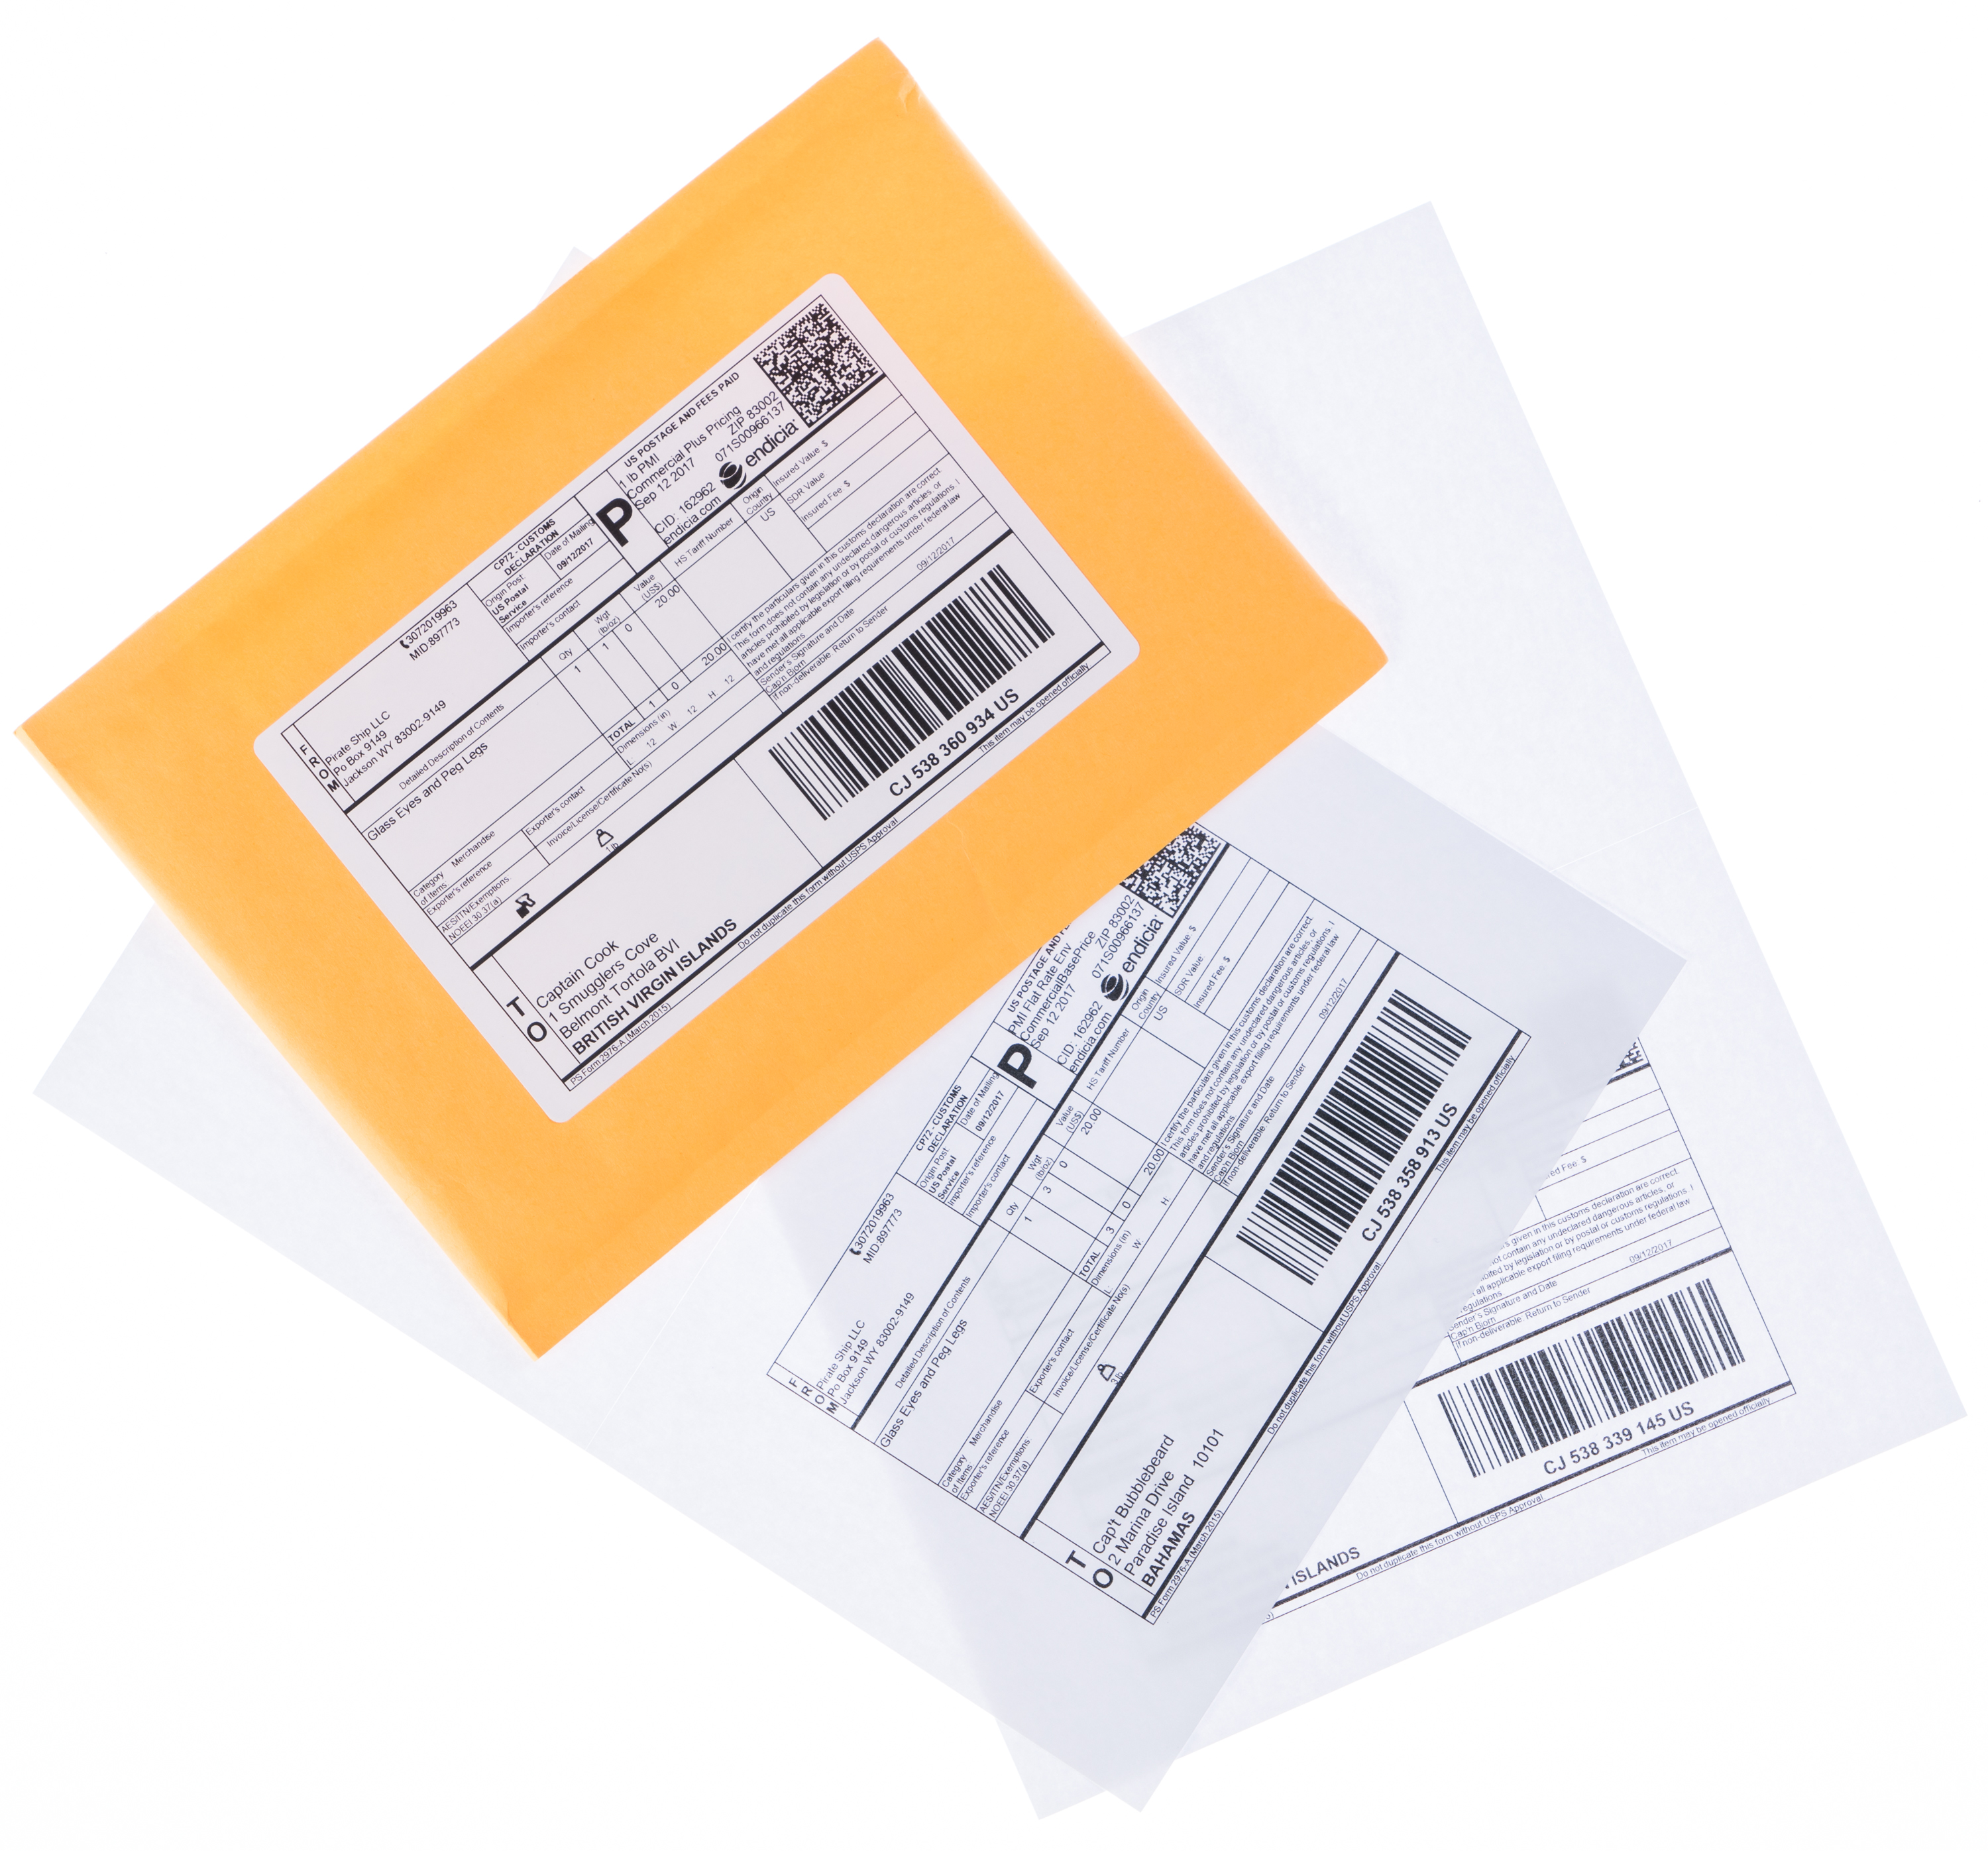 International shipping envelope and labels